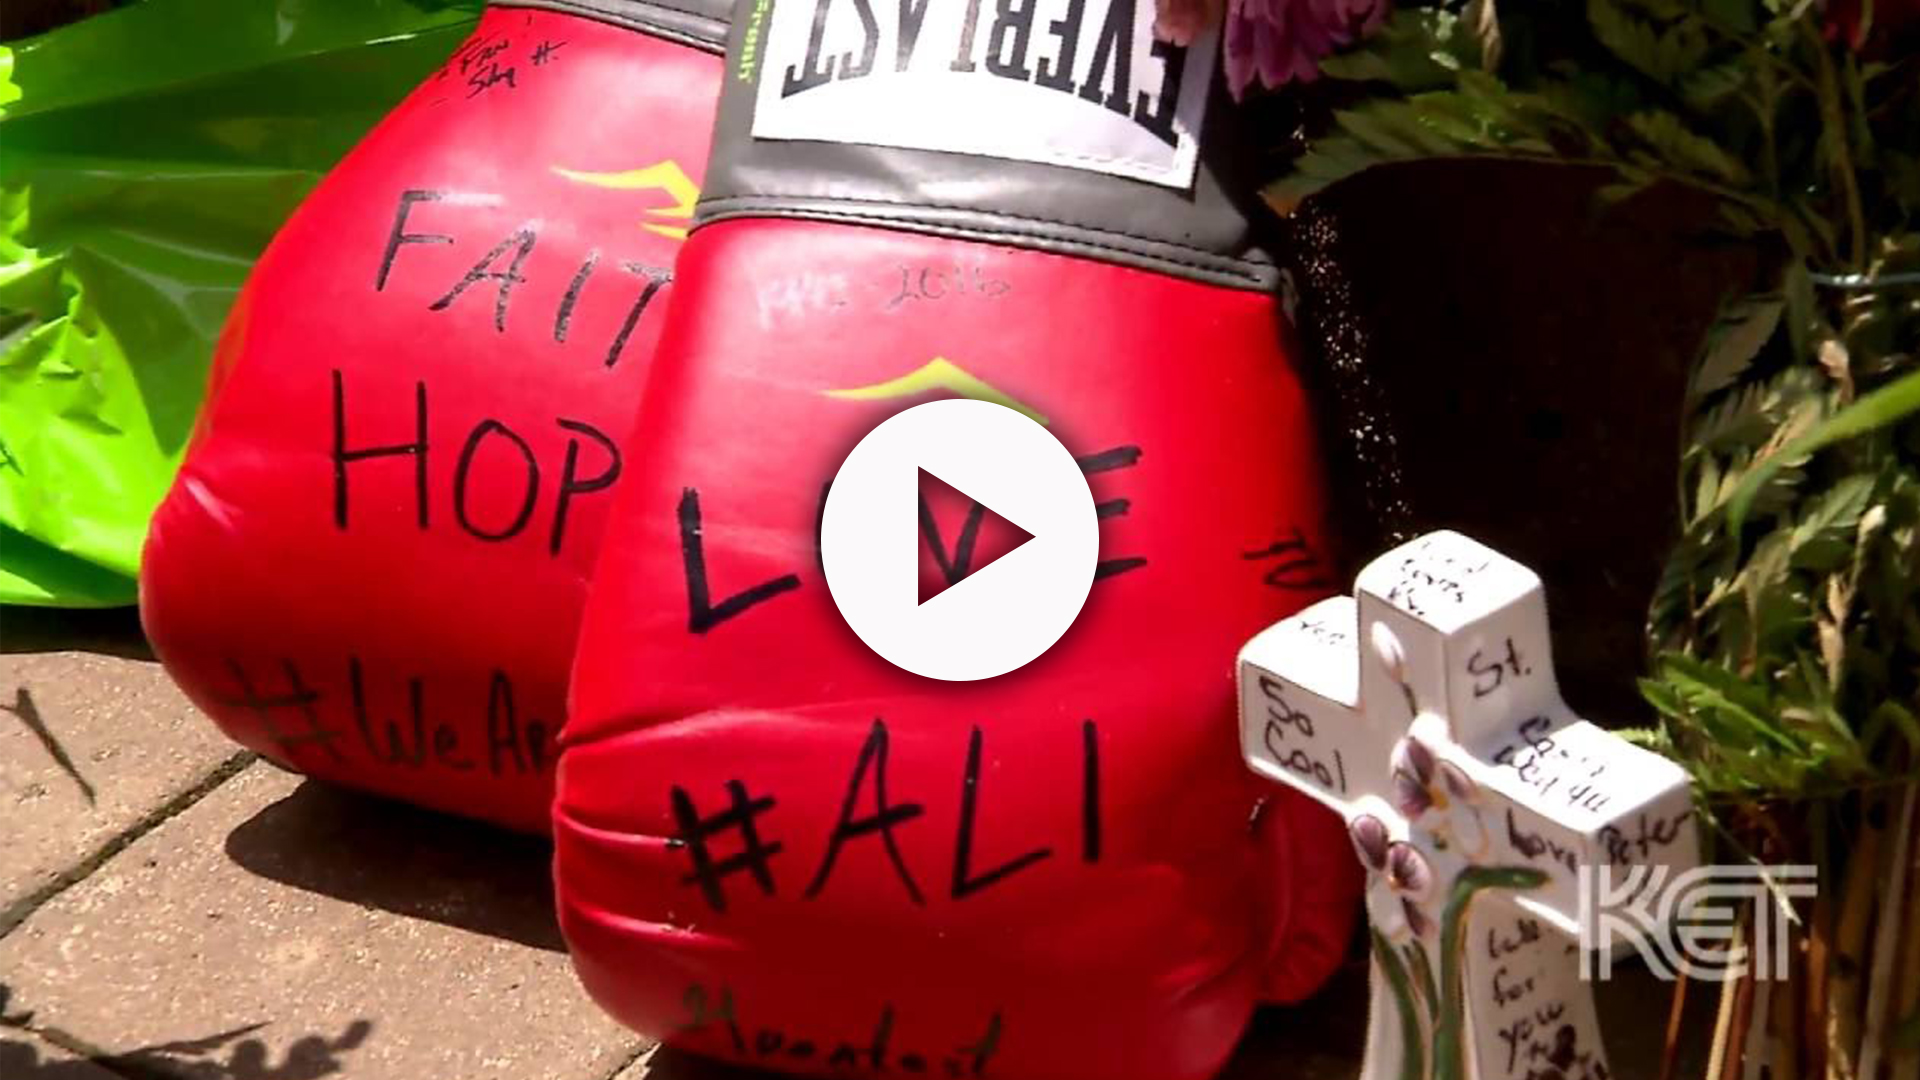 Red Everlast boxing gloves with writing on them next to a small white cross.